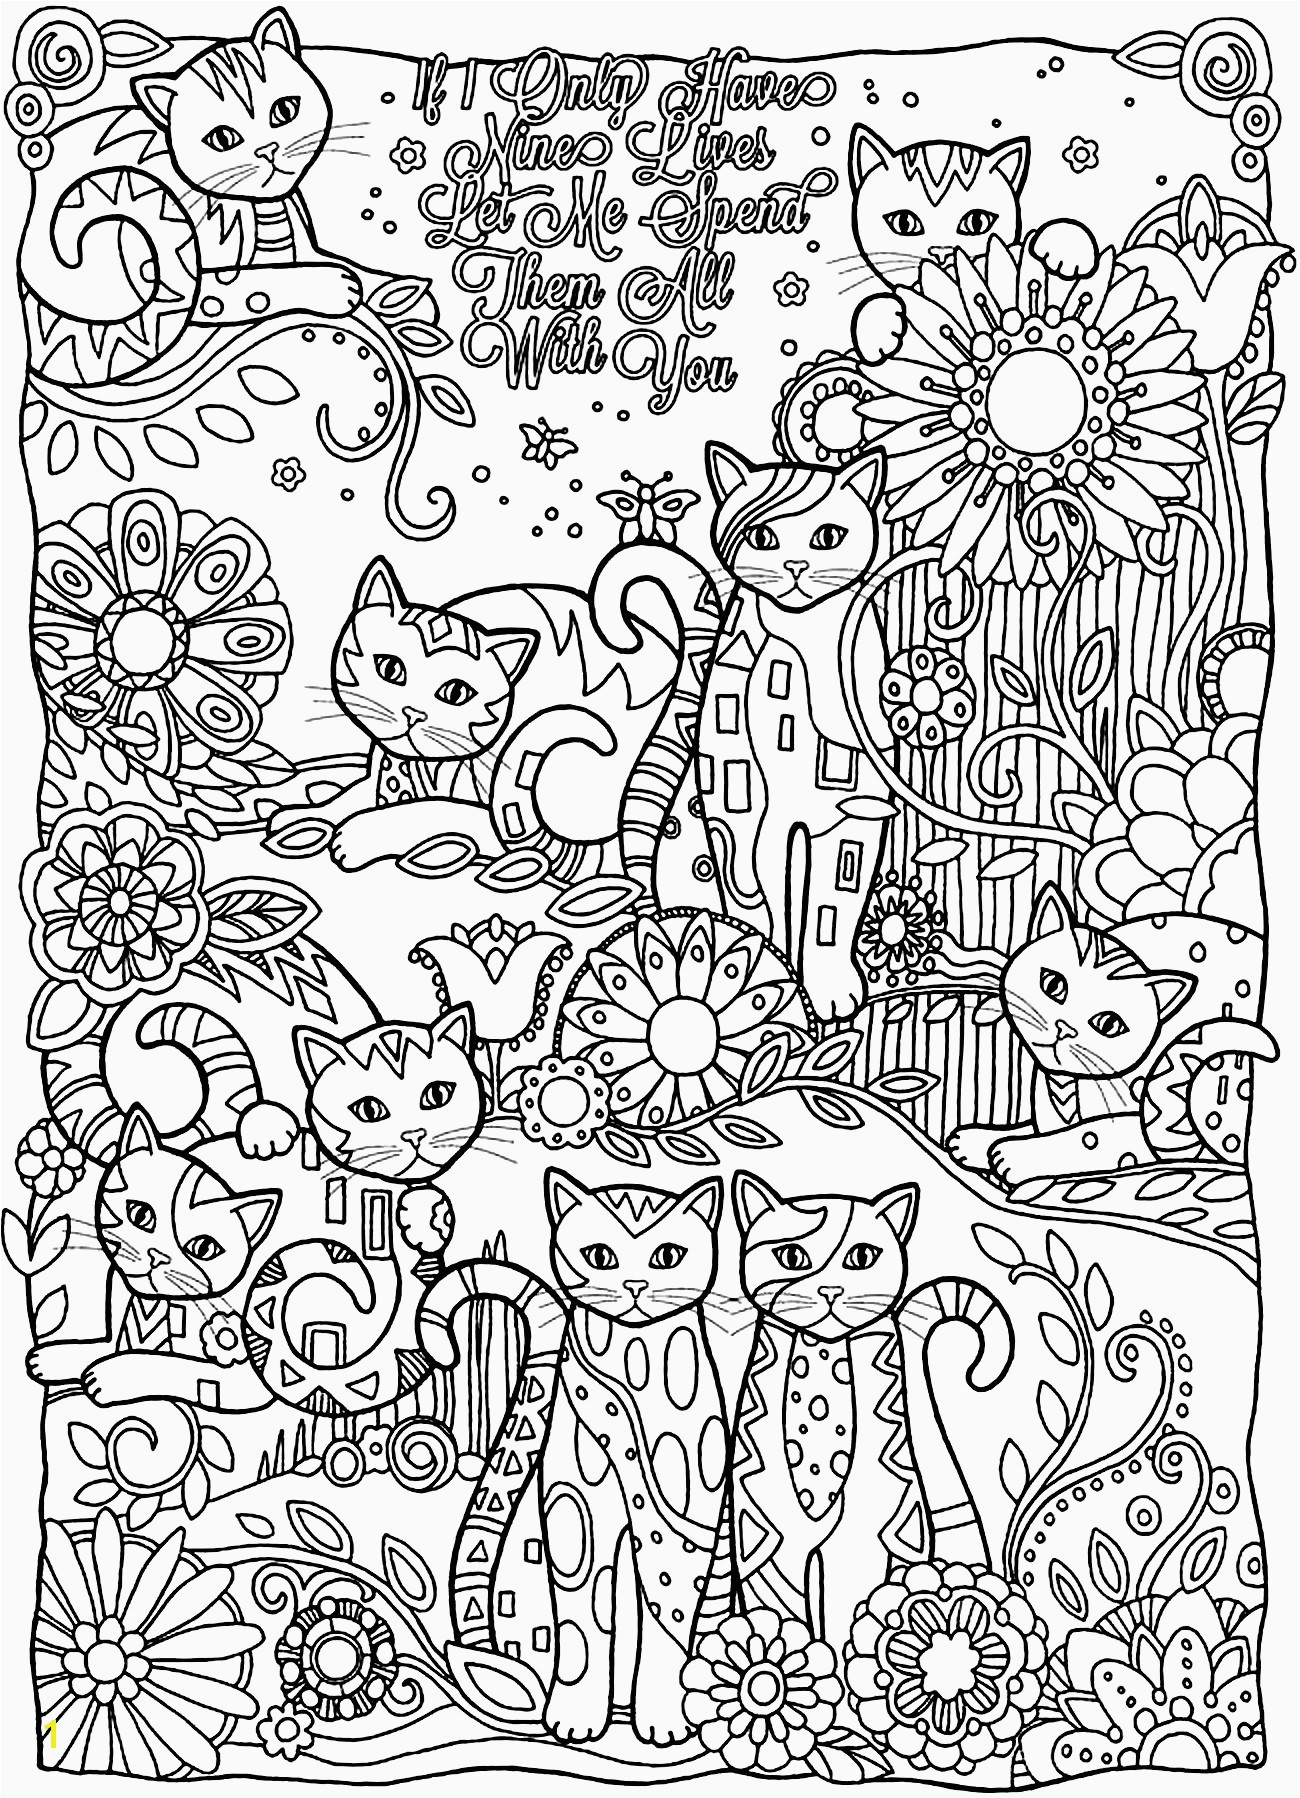 Coloring Pages Adults Printable Cute Printable Coloring Pages New Printable Od Dog Coloring Pages Free Colouring Pages With Printable Coloring Pages Adults